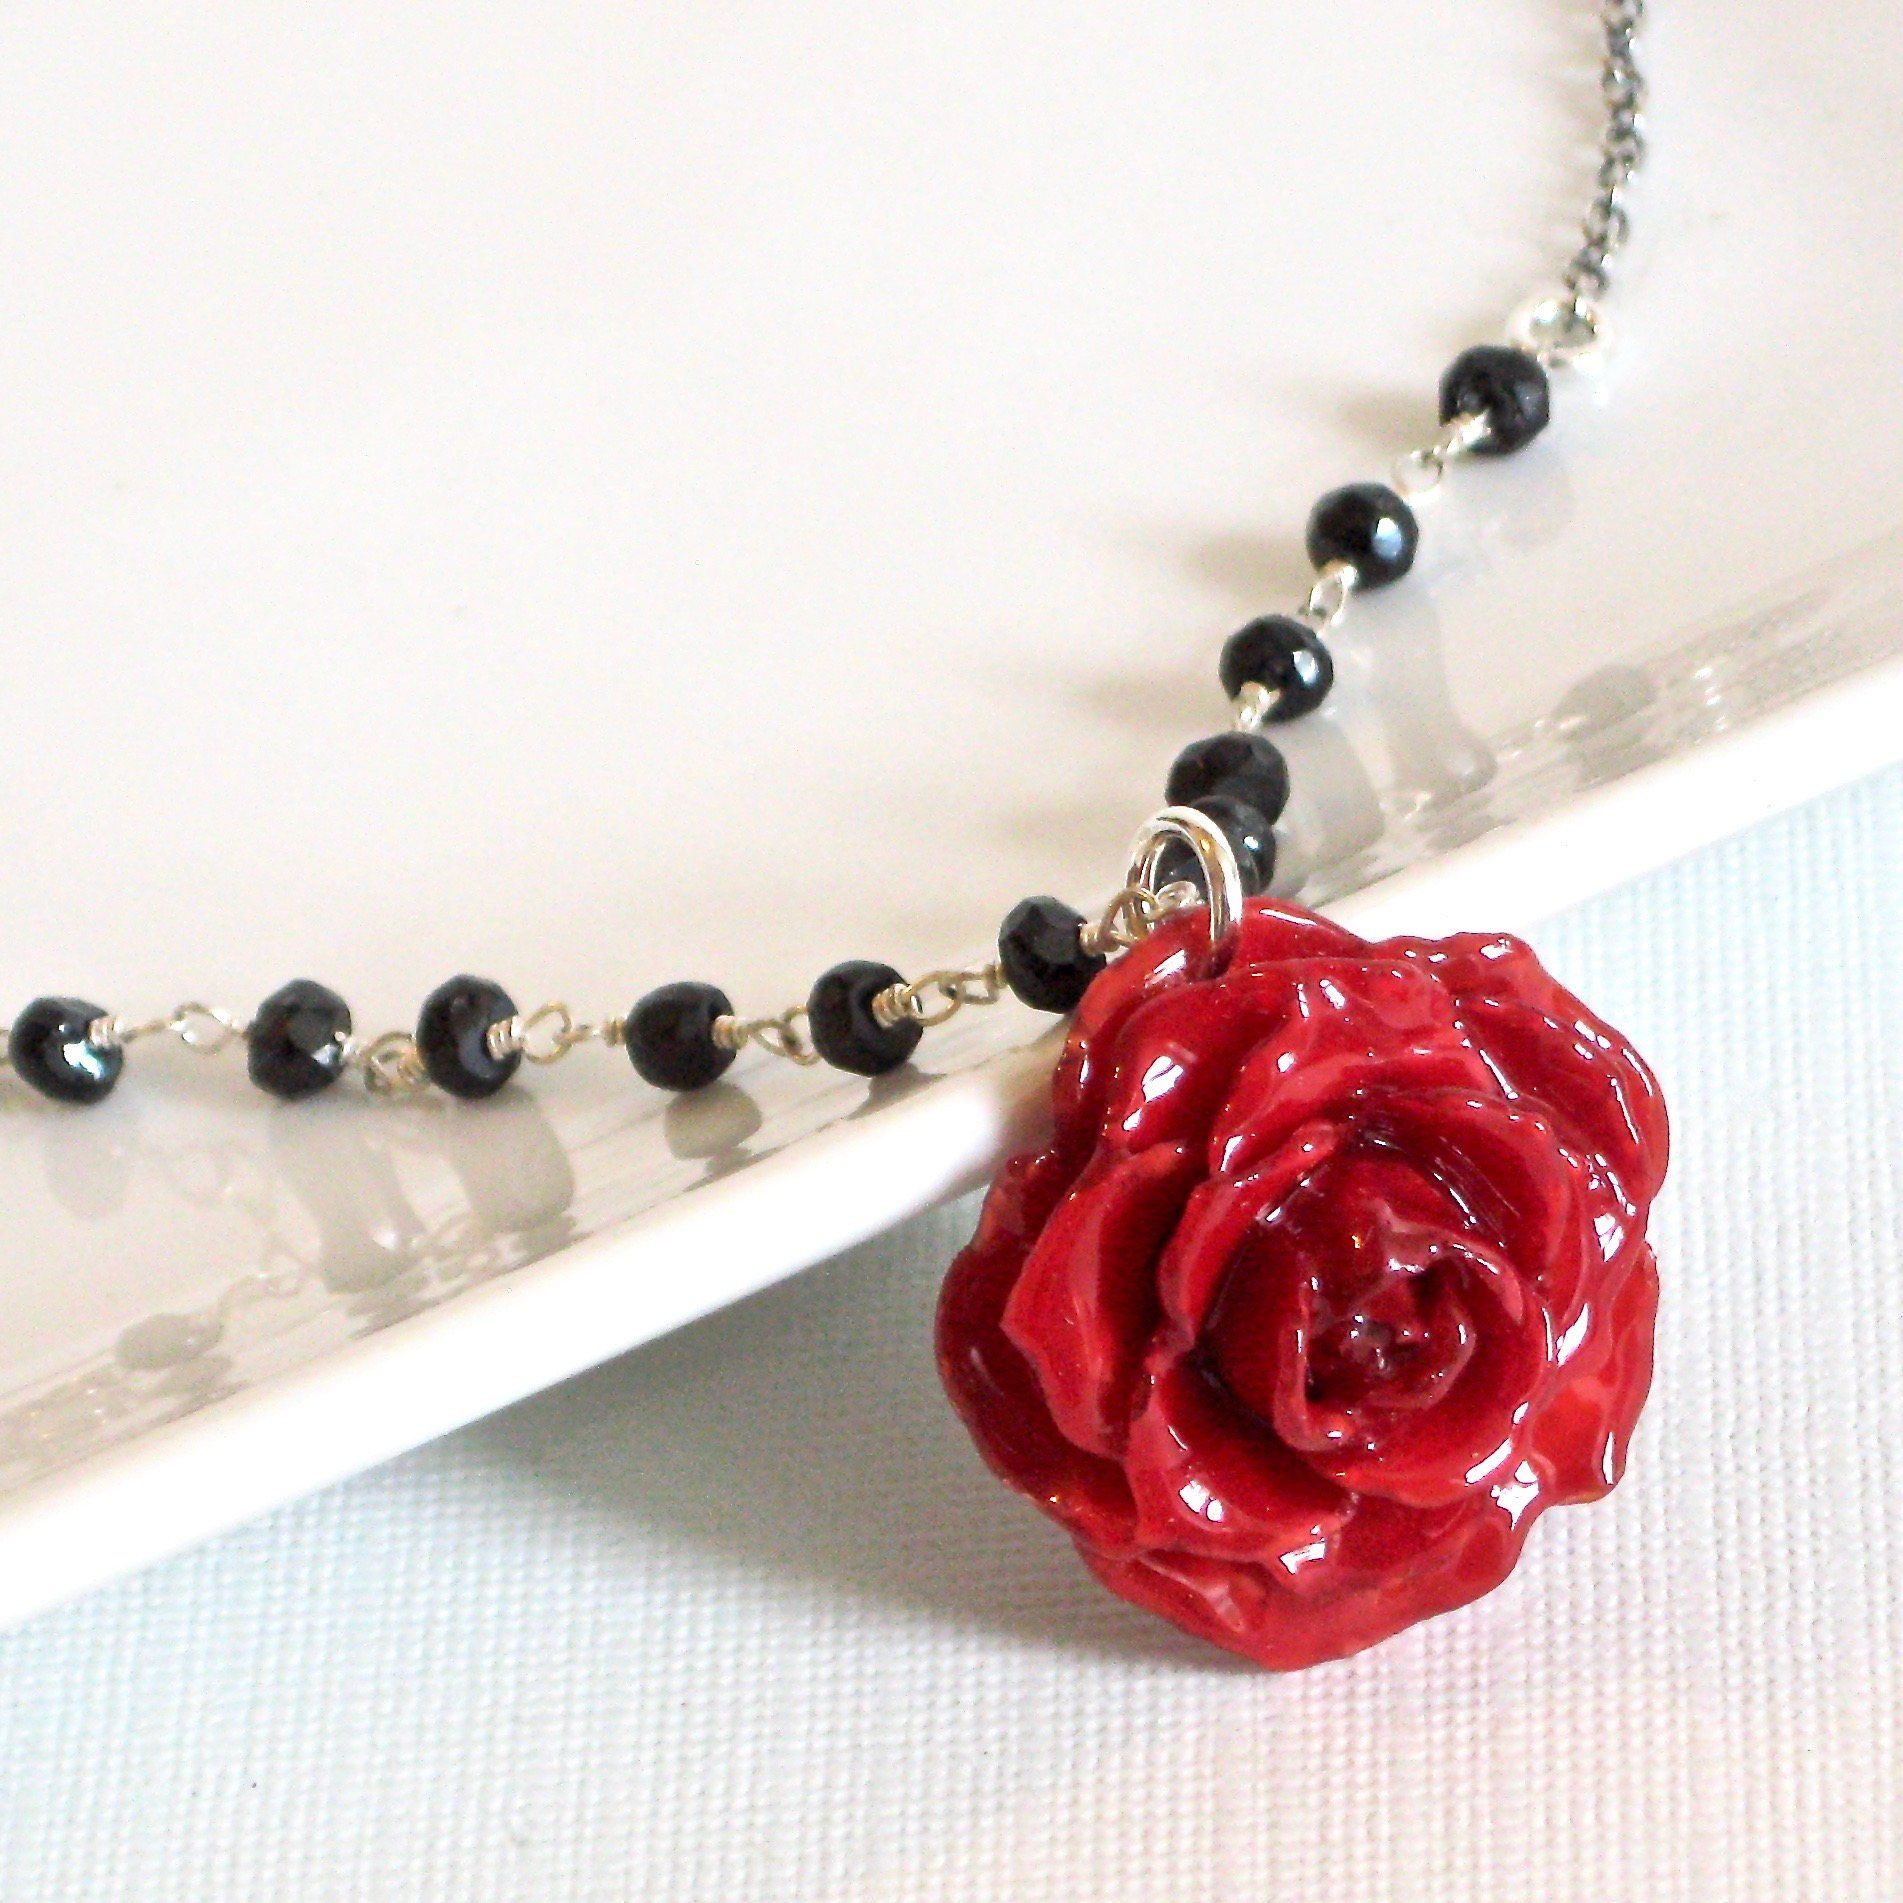 086abe0752287 Real Red Rose Necklace - Black Spinel Necklace, Sterling Silver ...